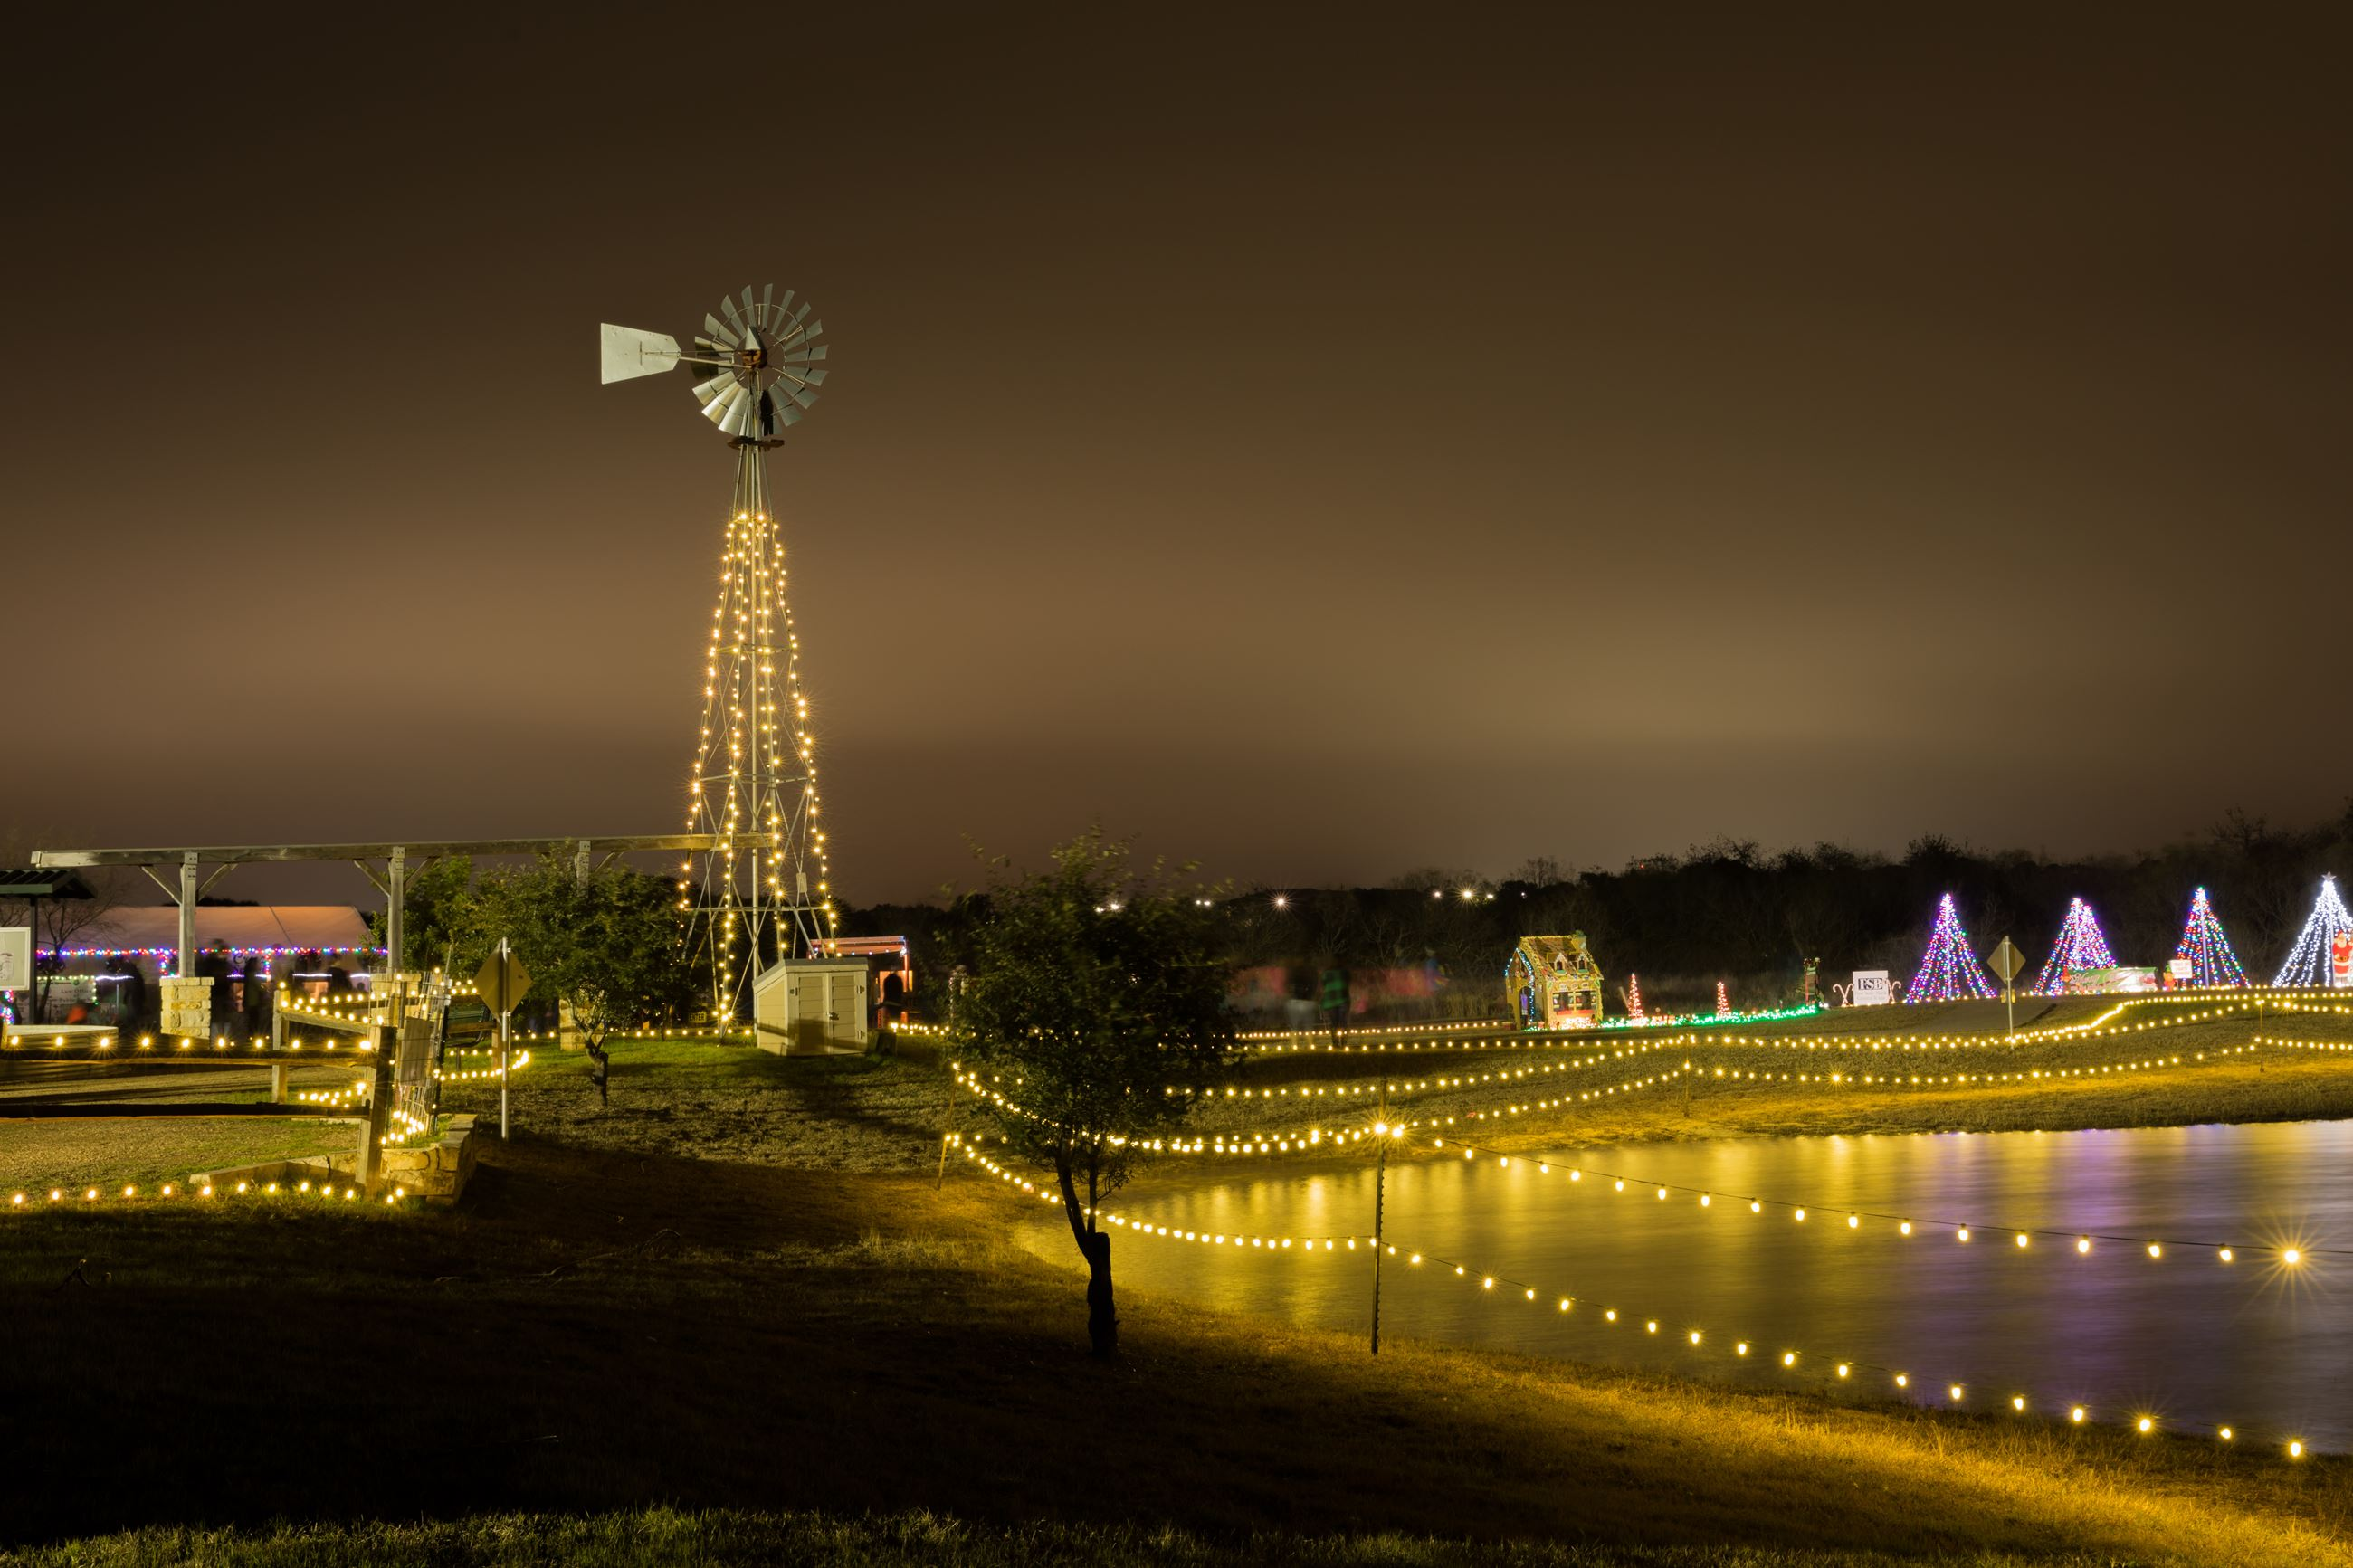 View of Stagecoach Park pond and windmill at night during Trail of Lights